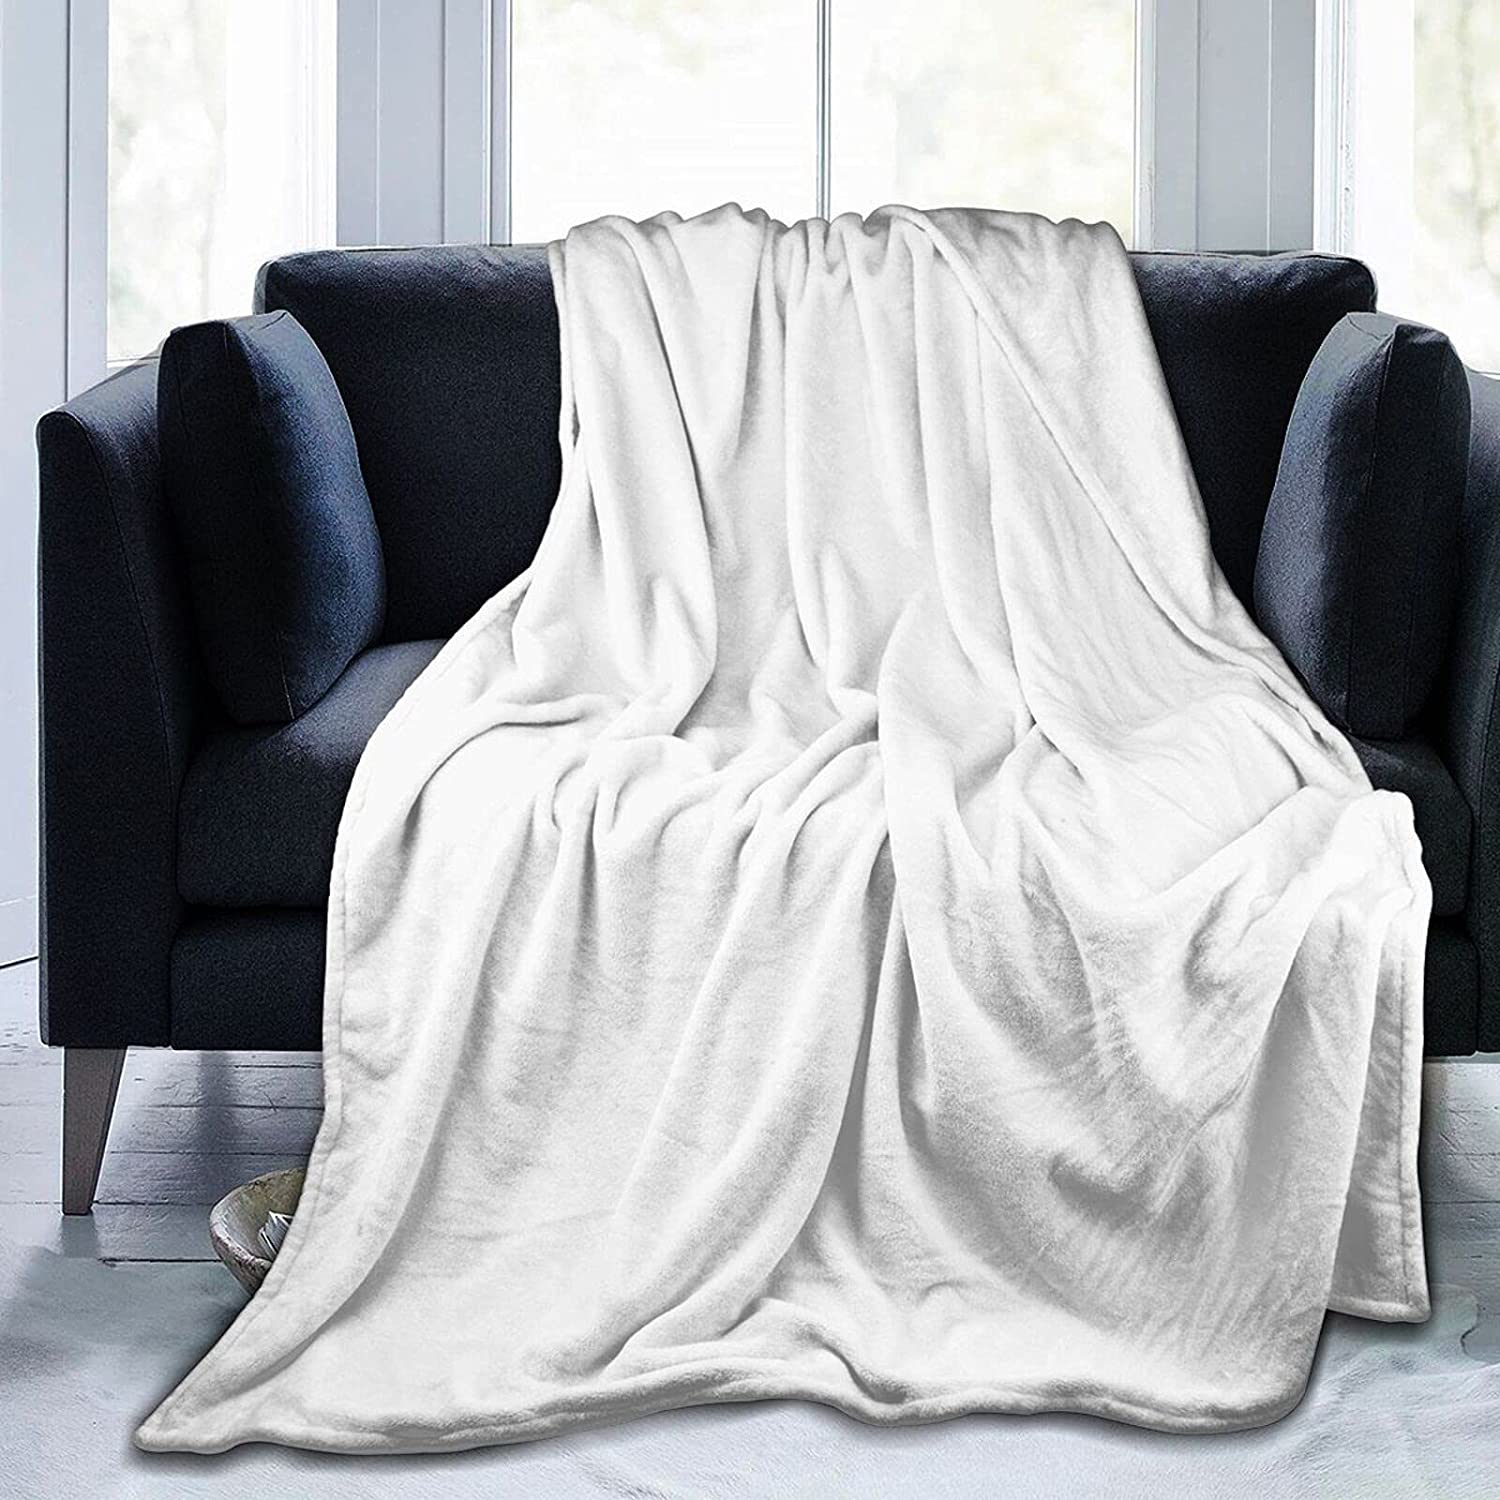 SEAL limited product Reneealsip Max 53% OFF Home Fleece Throw Blankets for Cozy Wa Couch Bed Sofa